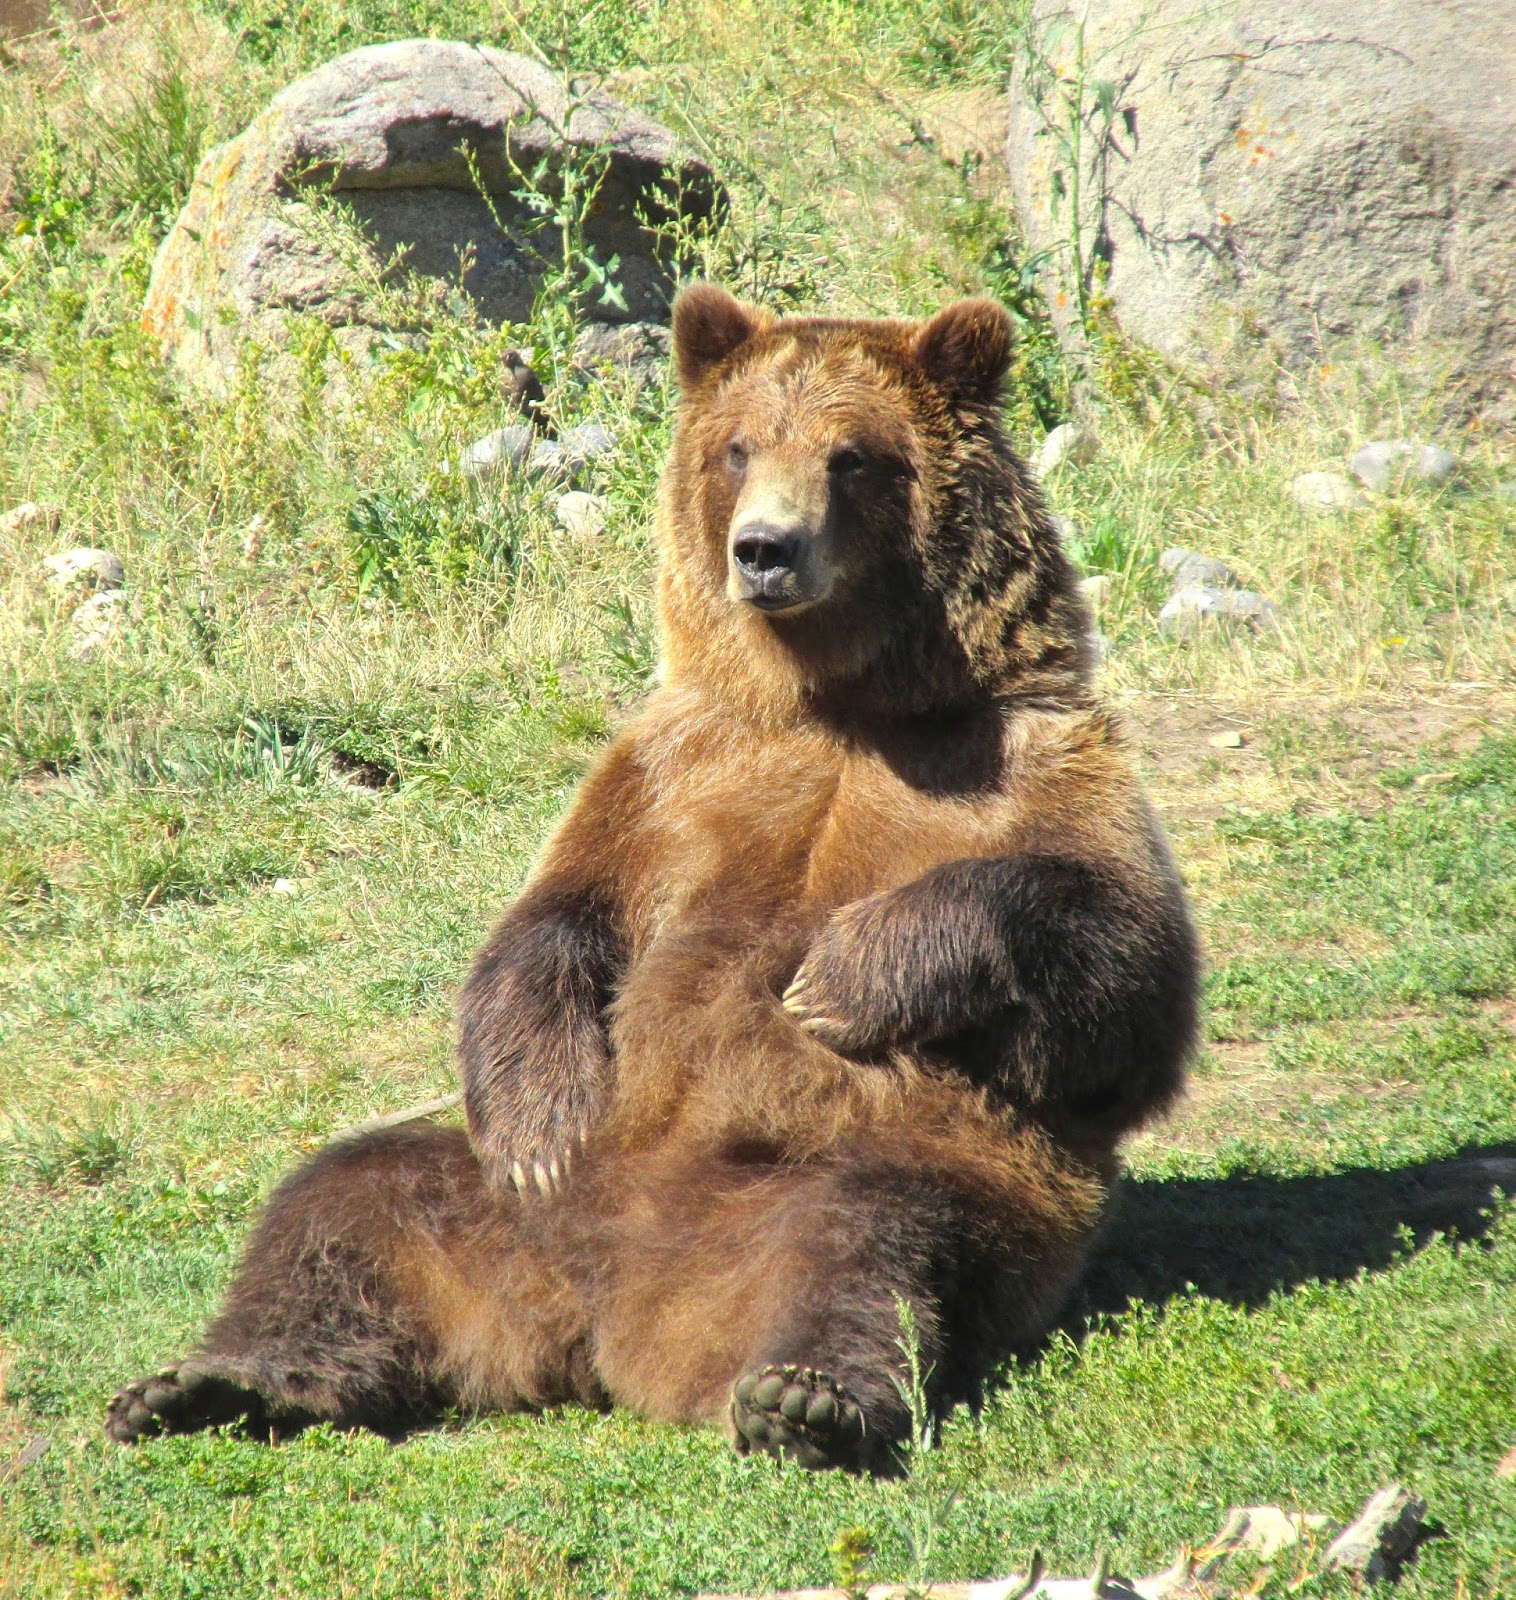 Grizzly bear sitting up - photo#47